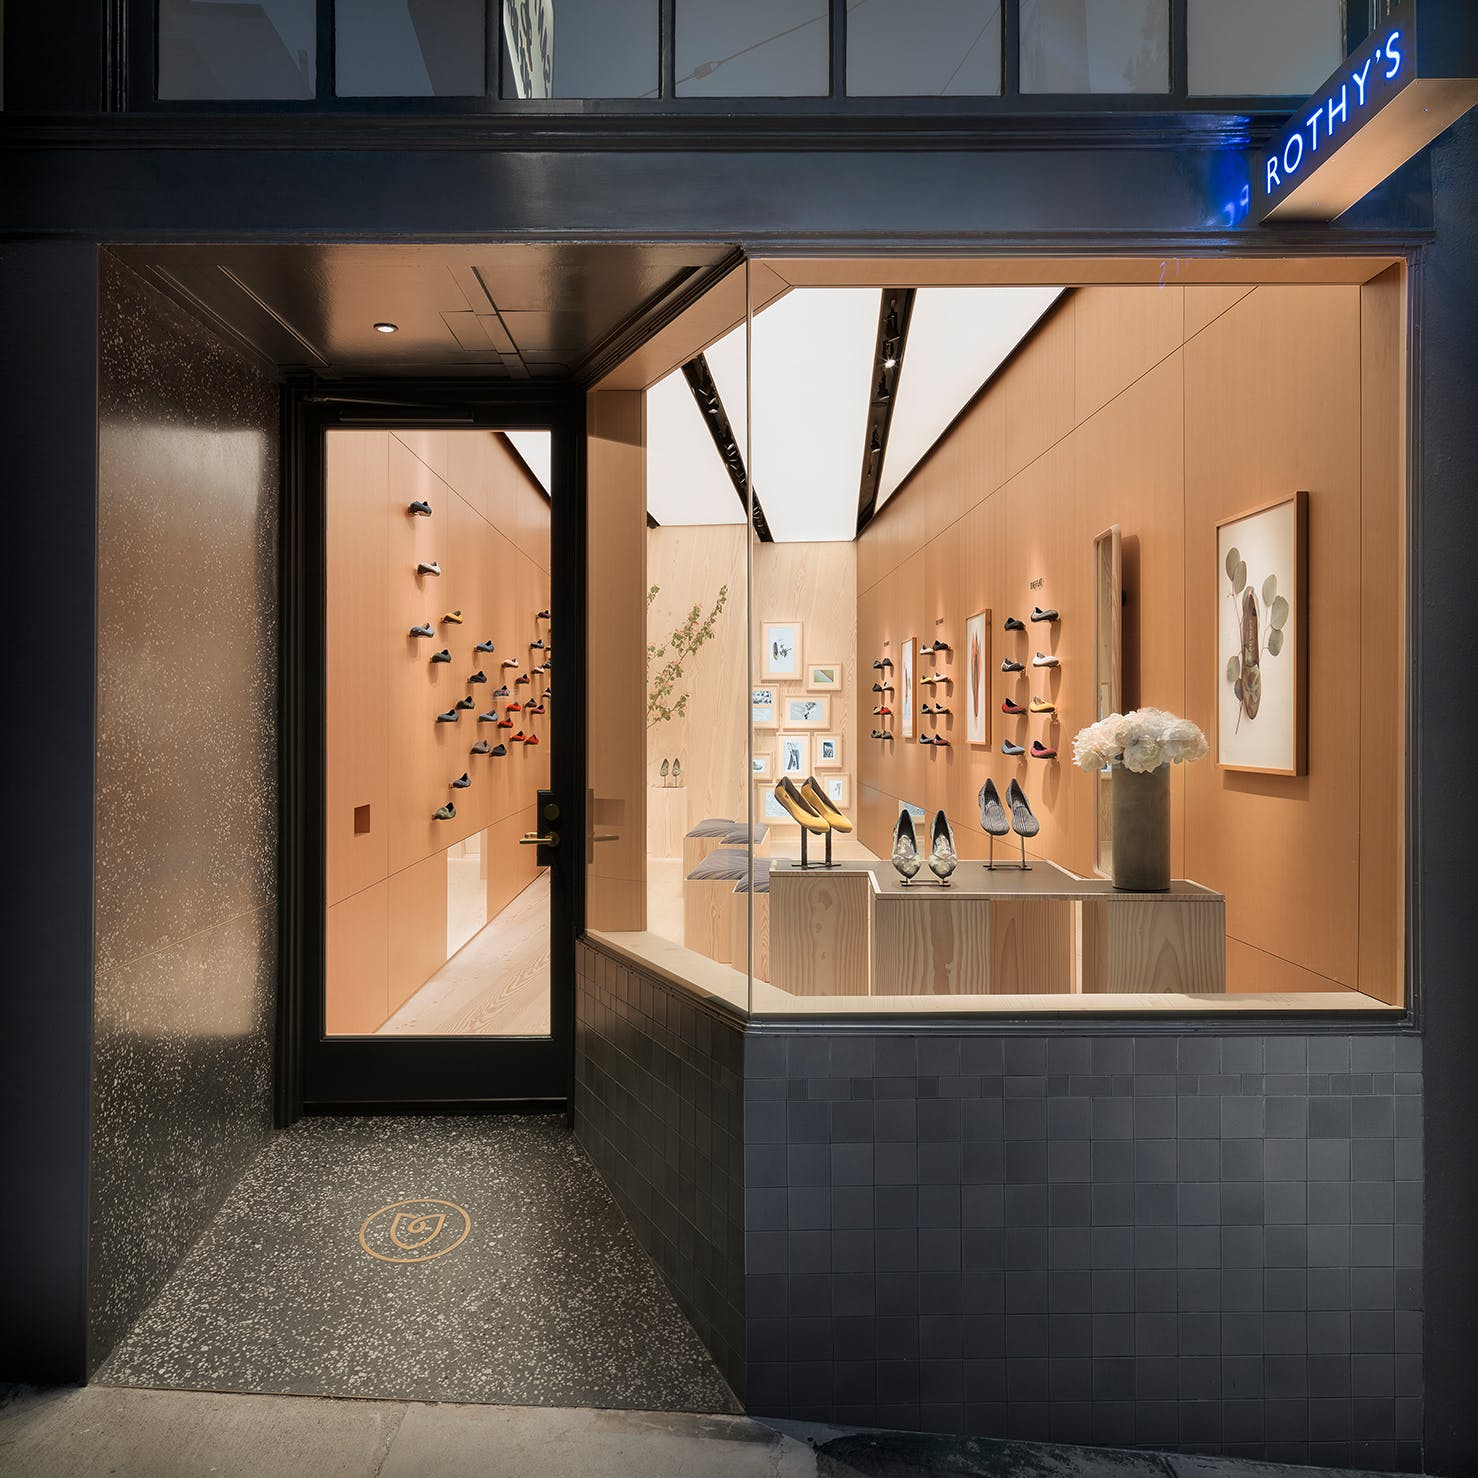 Our store on Fillmore Street in SF shown from the front view.